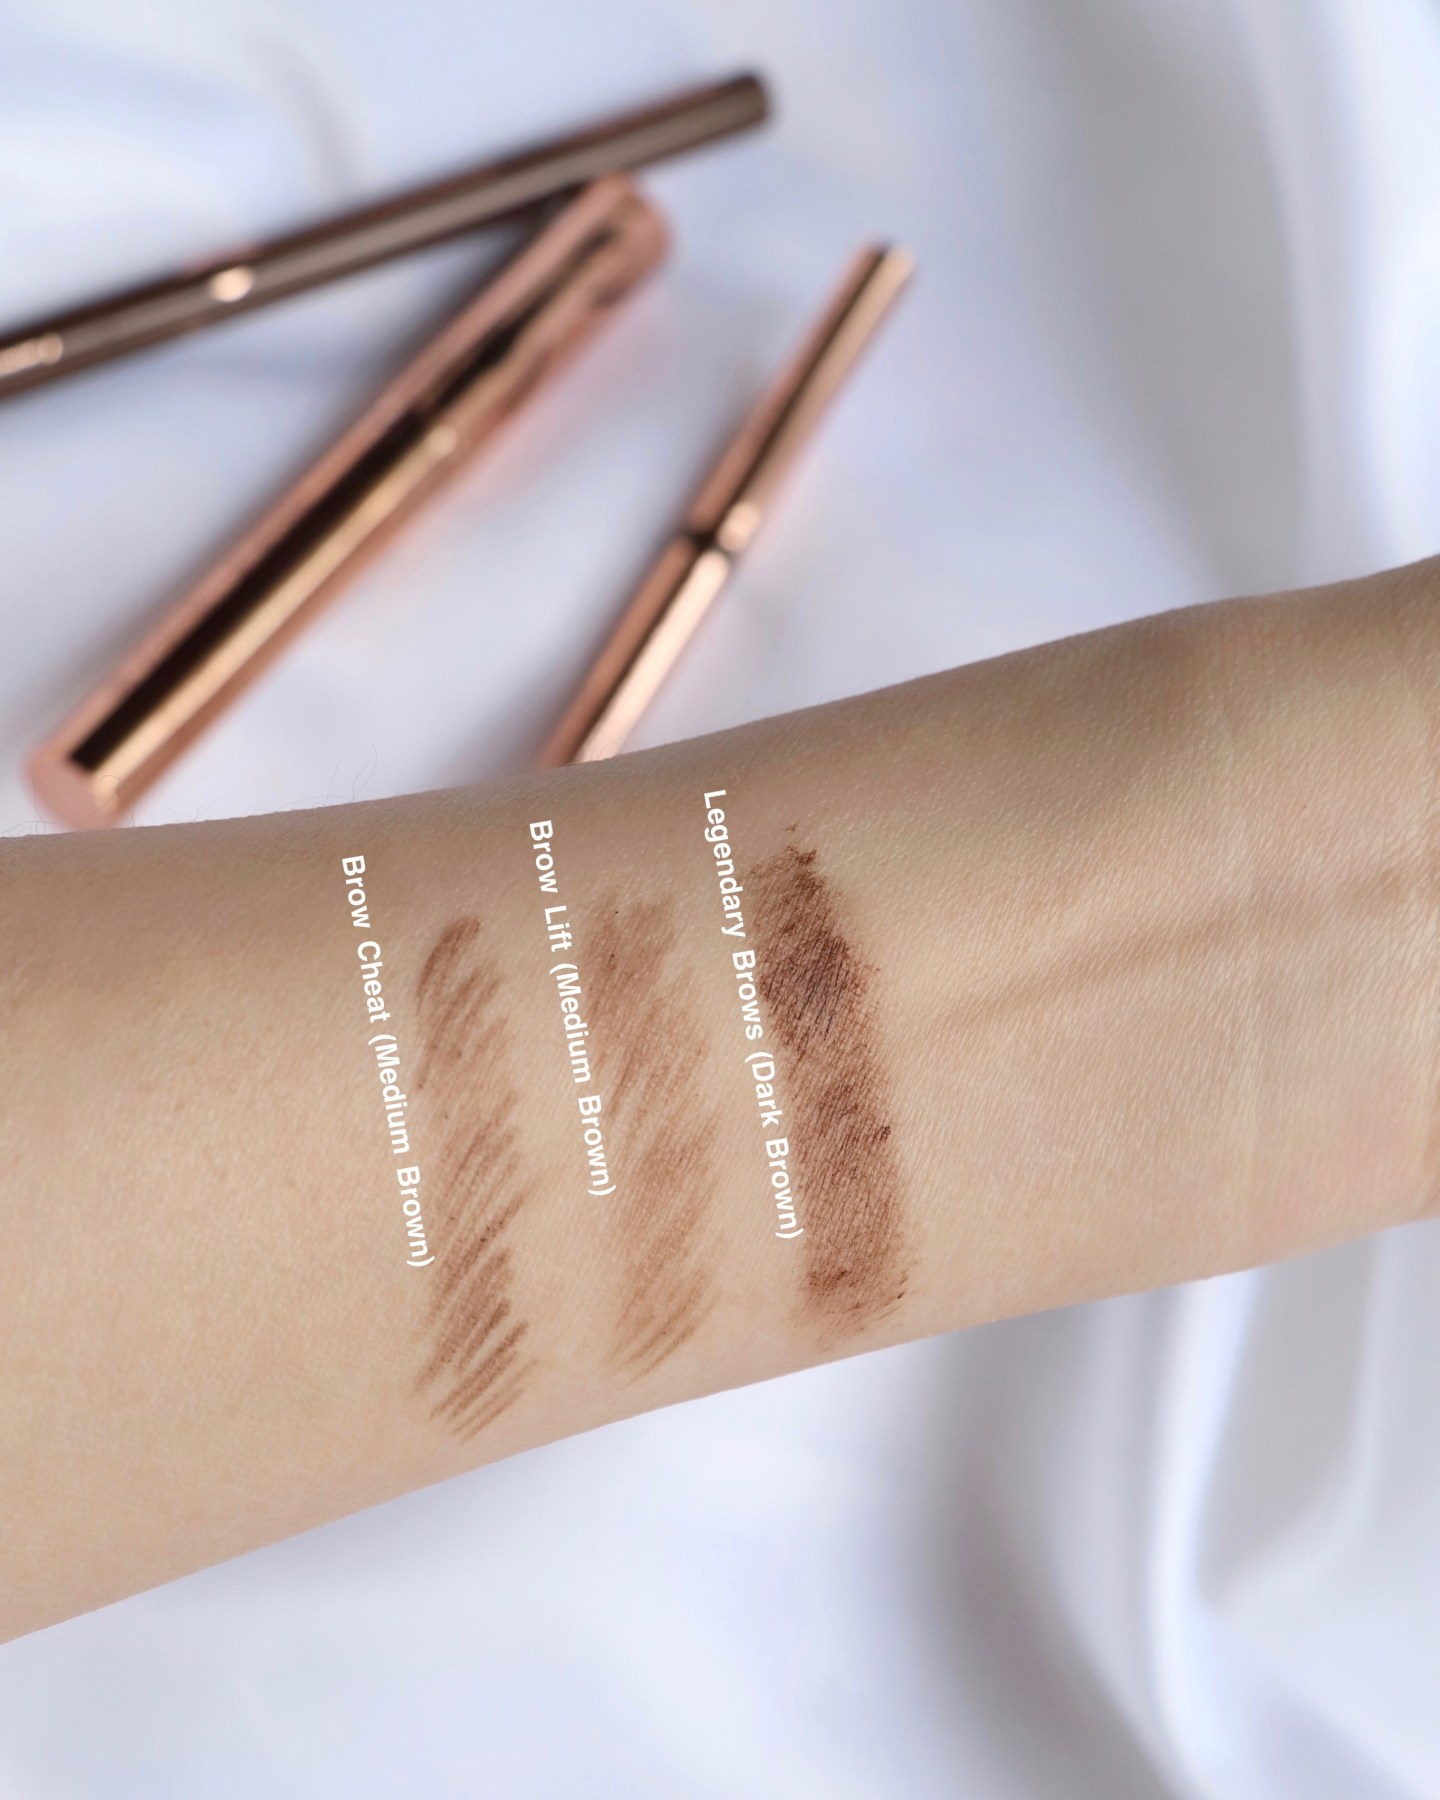 Charlotte Tilbury Supermodel Brows System Swatches